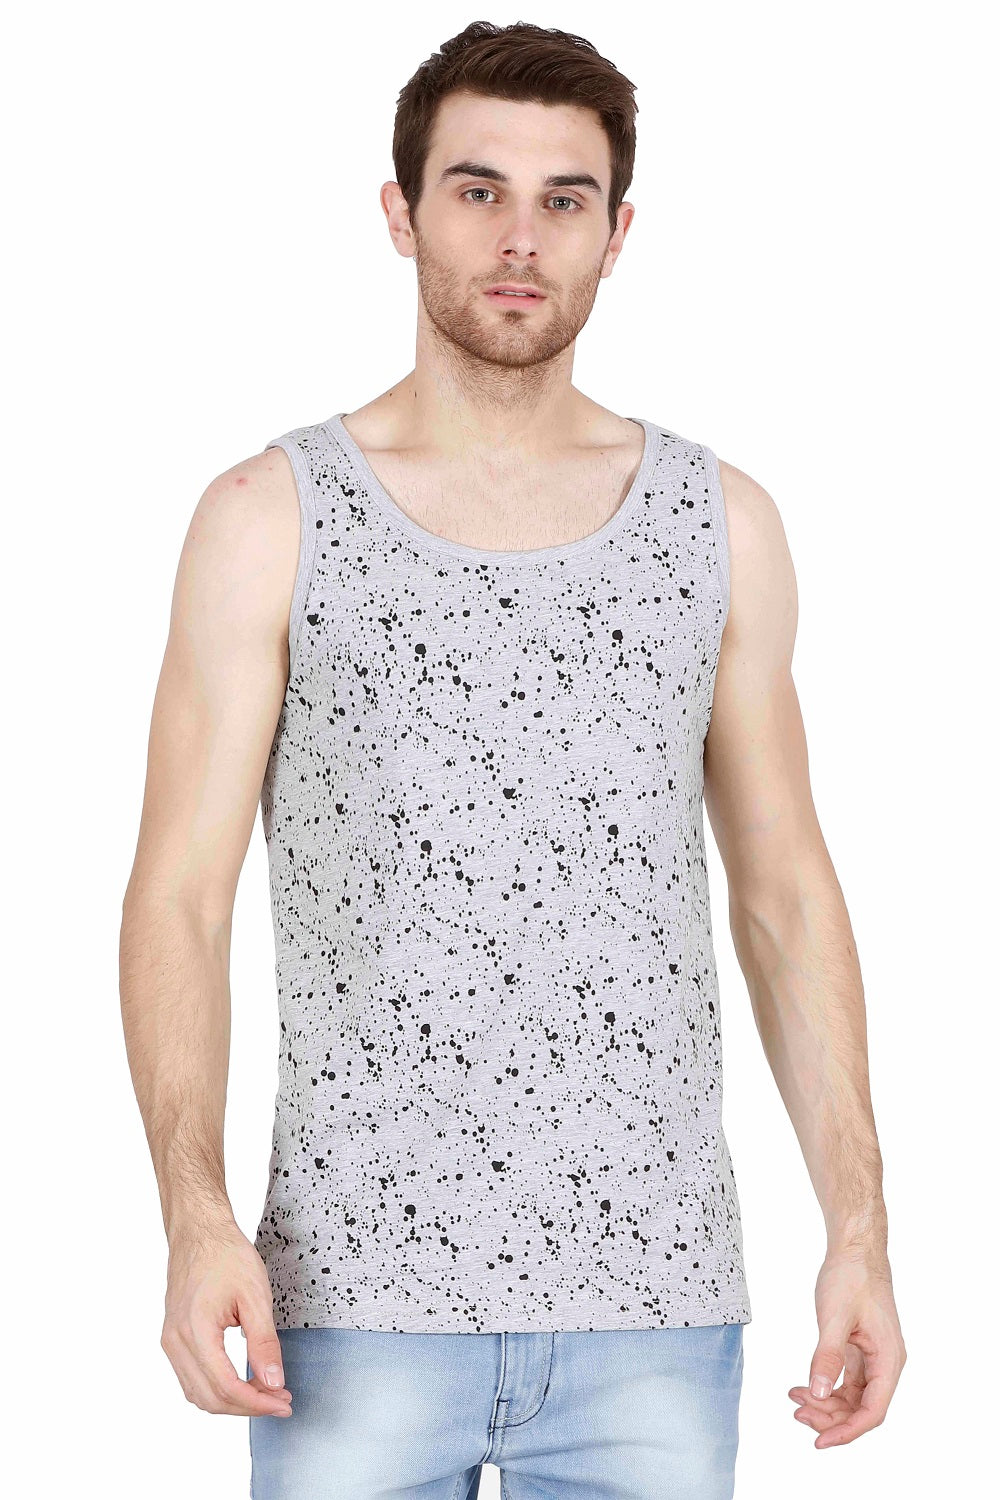 Men's Splash print Round Neck Sleeveless Vest